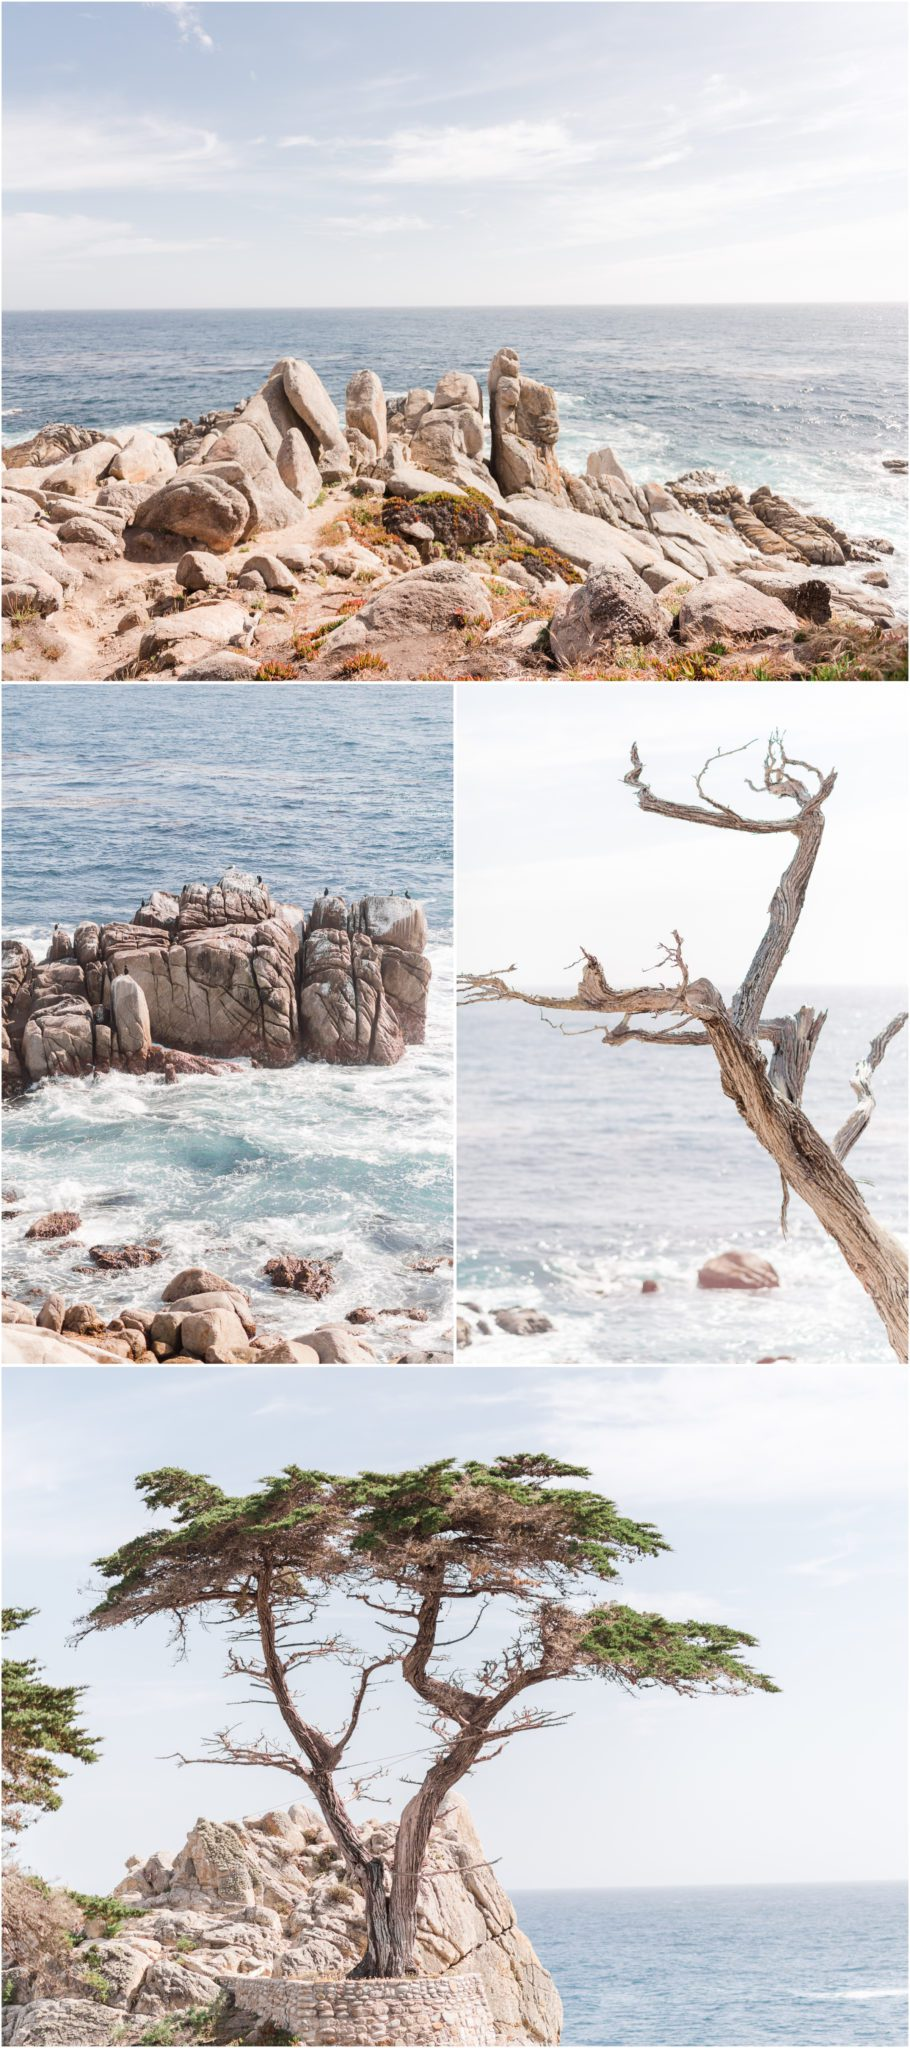 17-Mile Drive Pebble Beach and the Lone Cypress